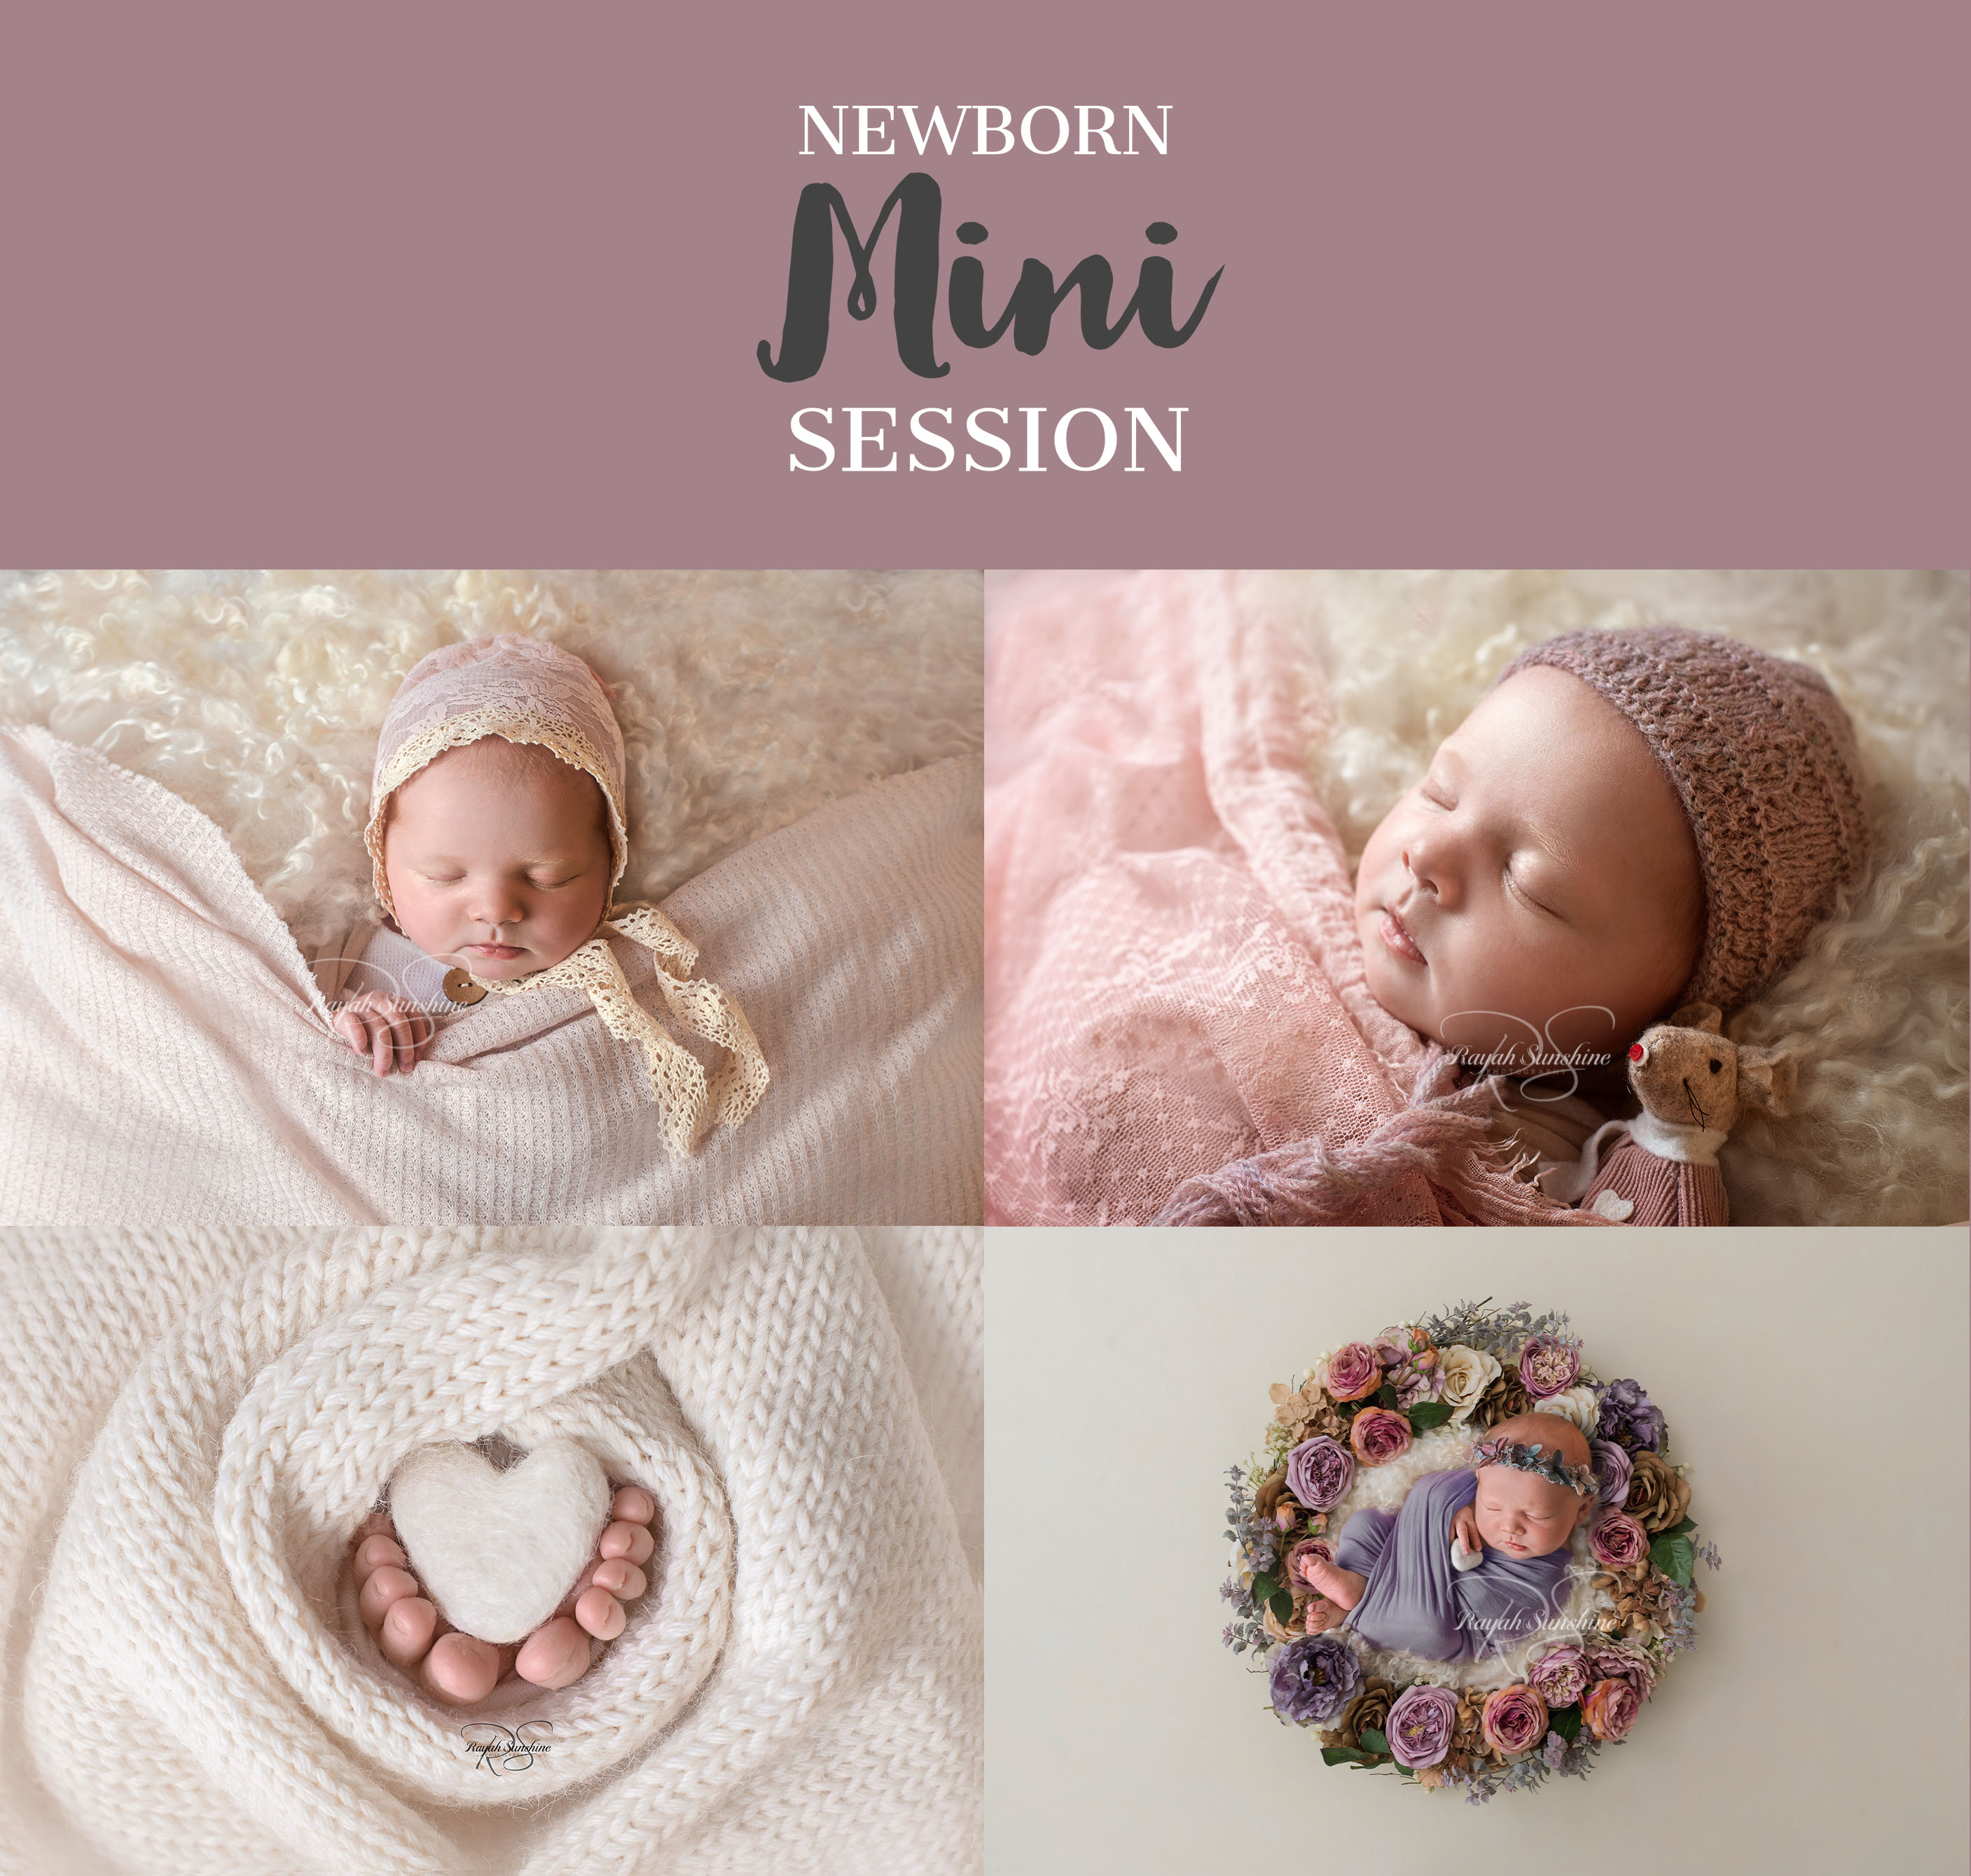 What is A Newborn Mini Session?